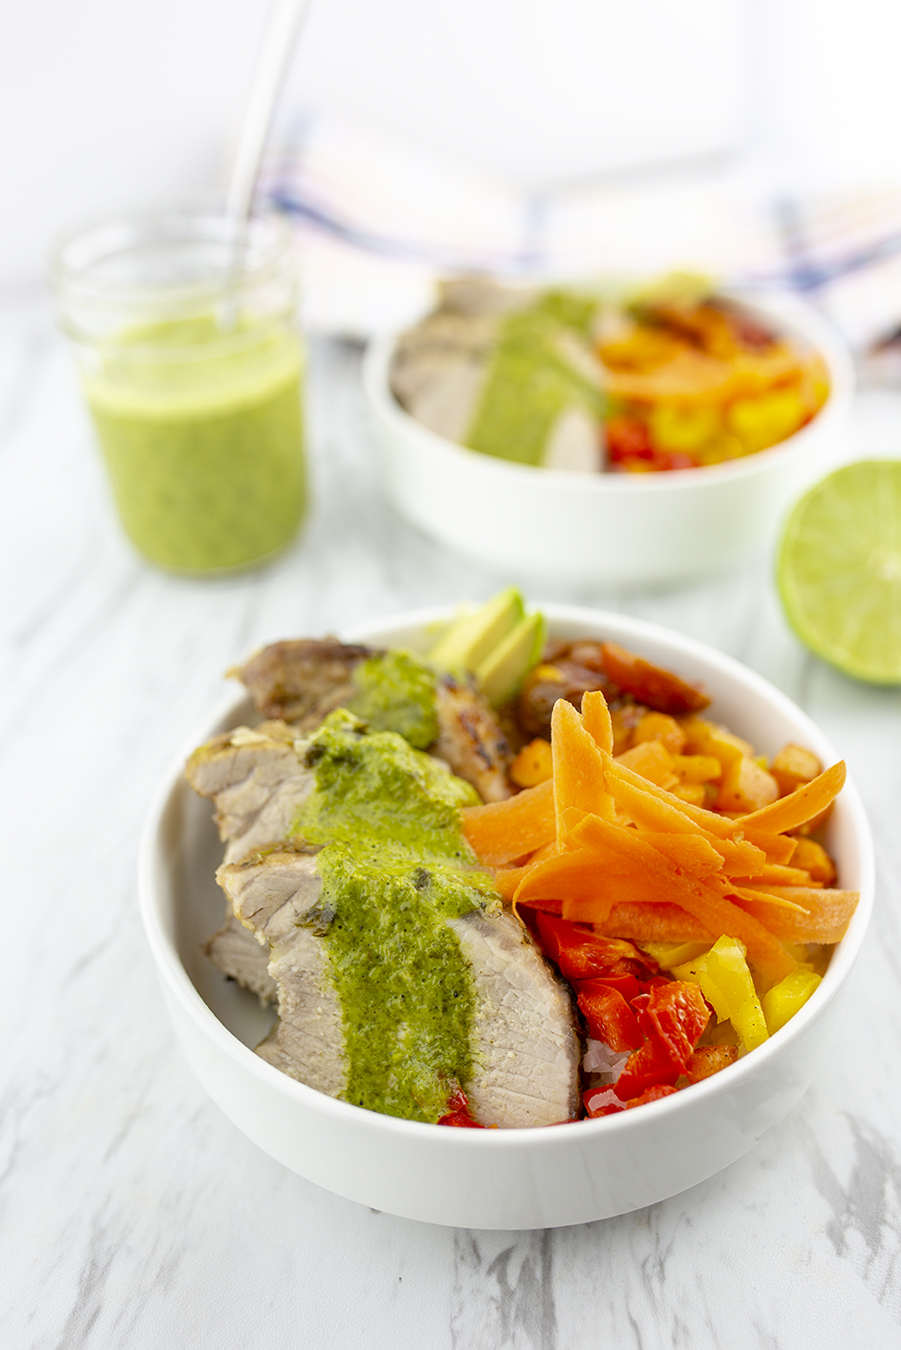 Bowl of Cilantro Lime Pork with vegetables